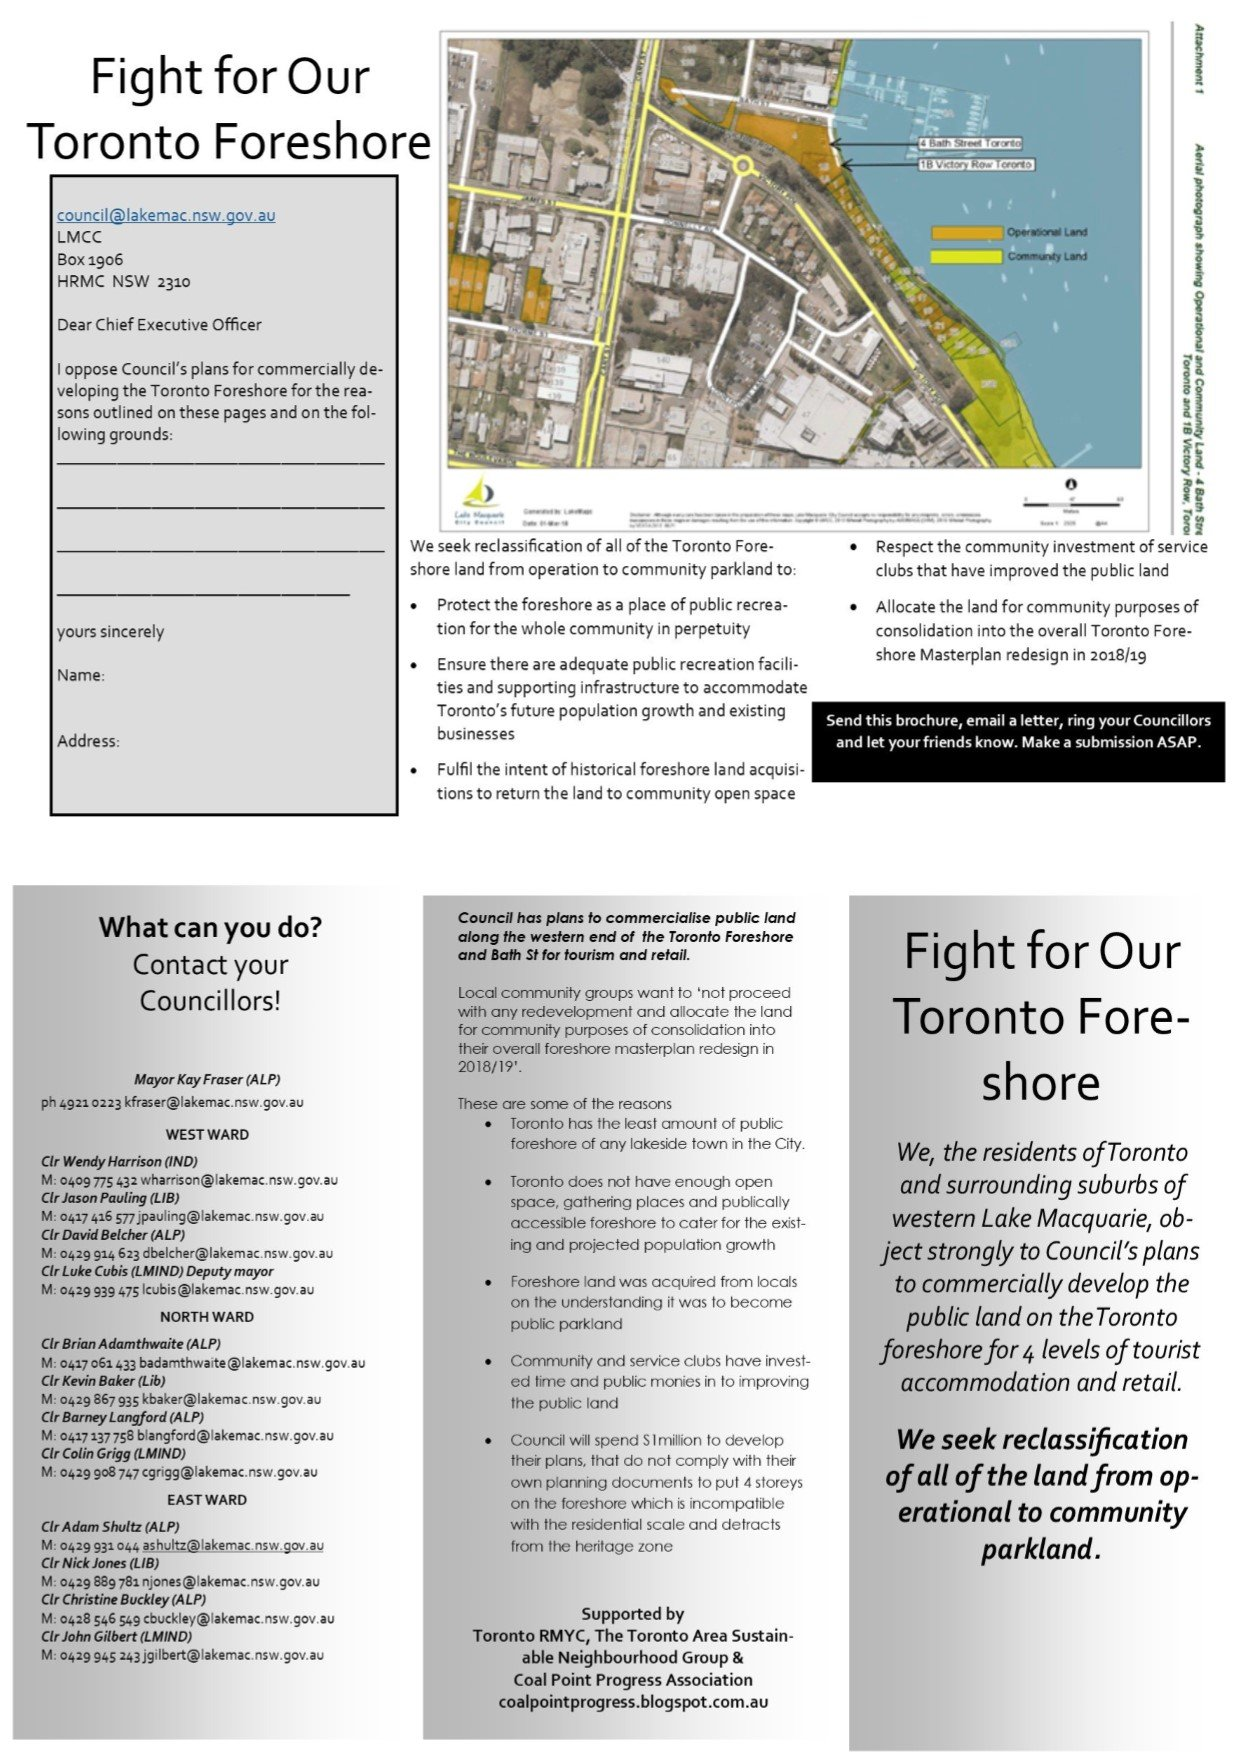 Help save the Toronto foreshore